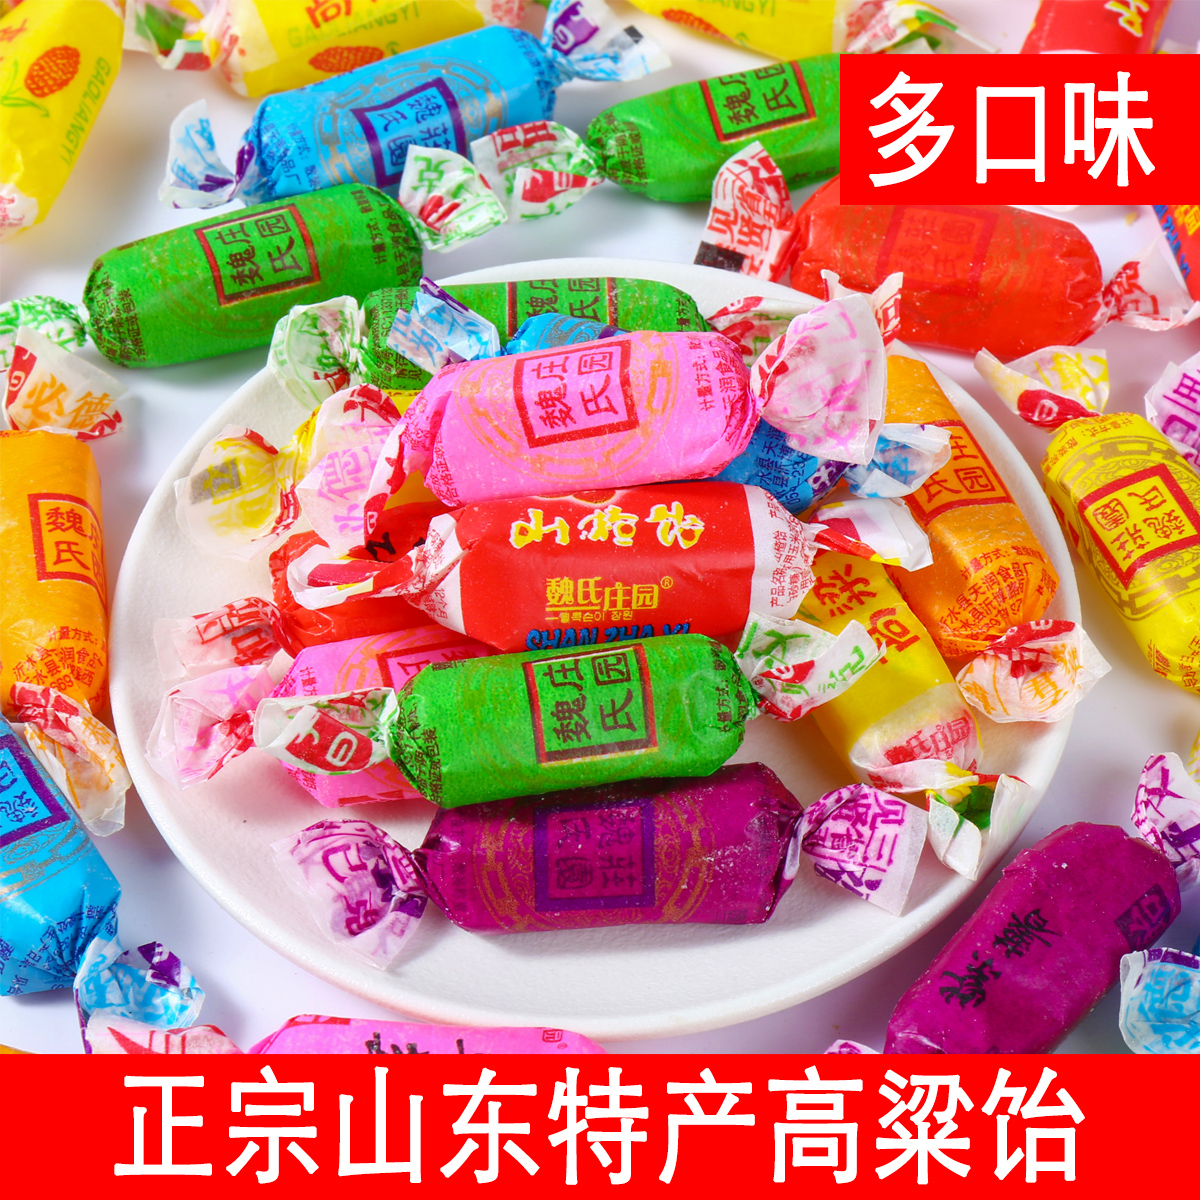 Authentic Shandong specialty traditional flavor bagged sorghum malt candy candy candy nostalgic snack factory direct sales